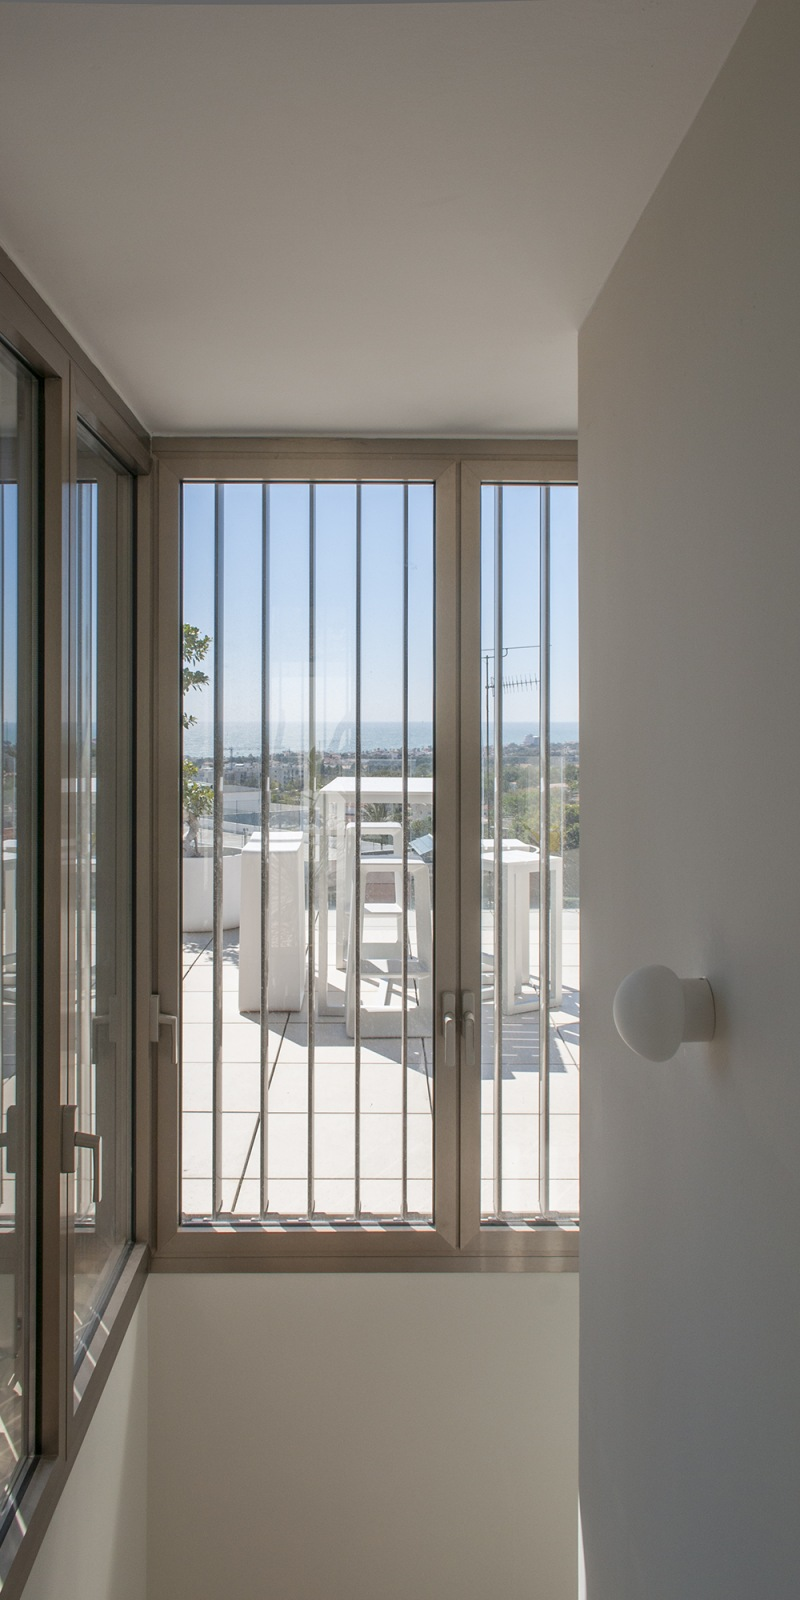 17-b-rardo-architects-houses-in-sitges-volume-terrace-window-seaview